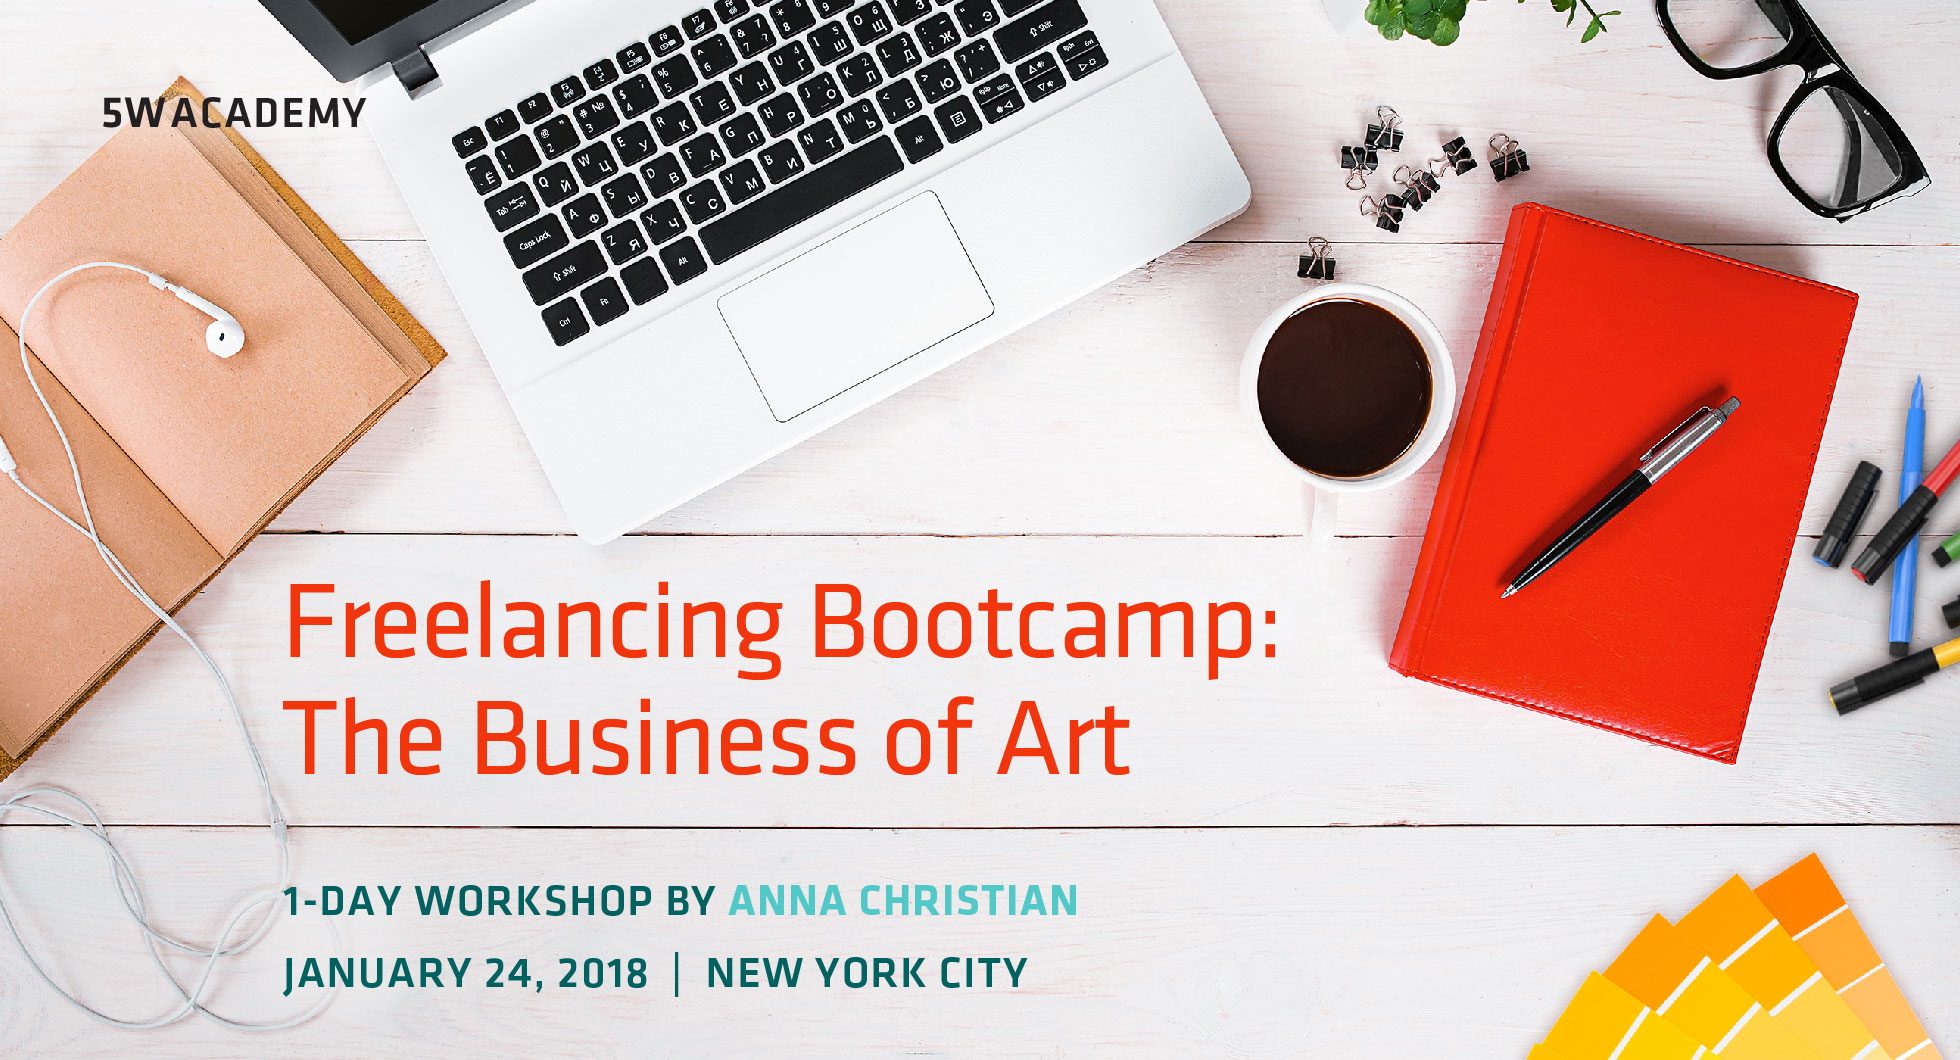 Our new workshop: Freelancing Bootcamp, the Business of Art